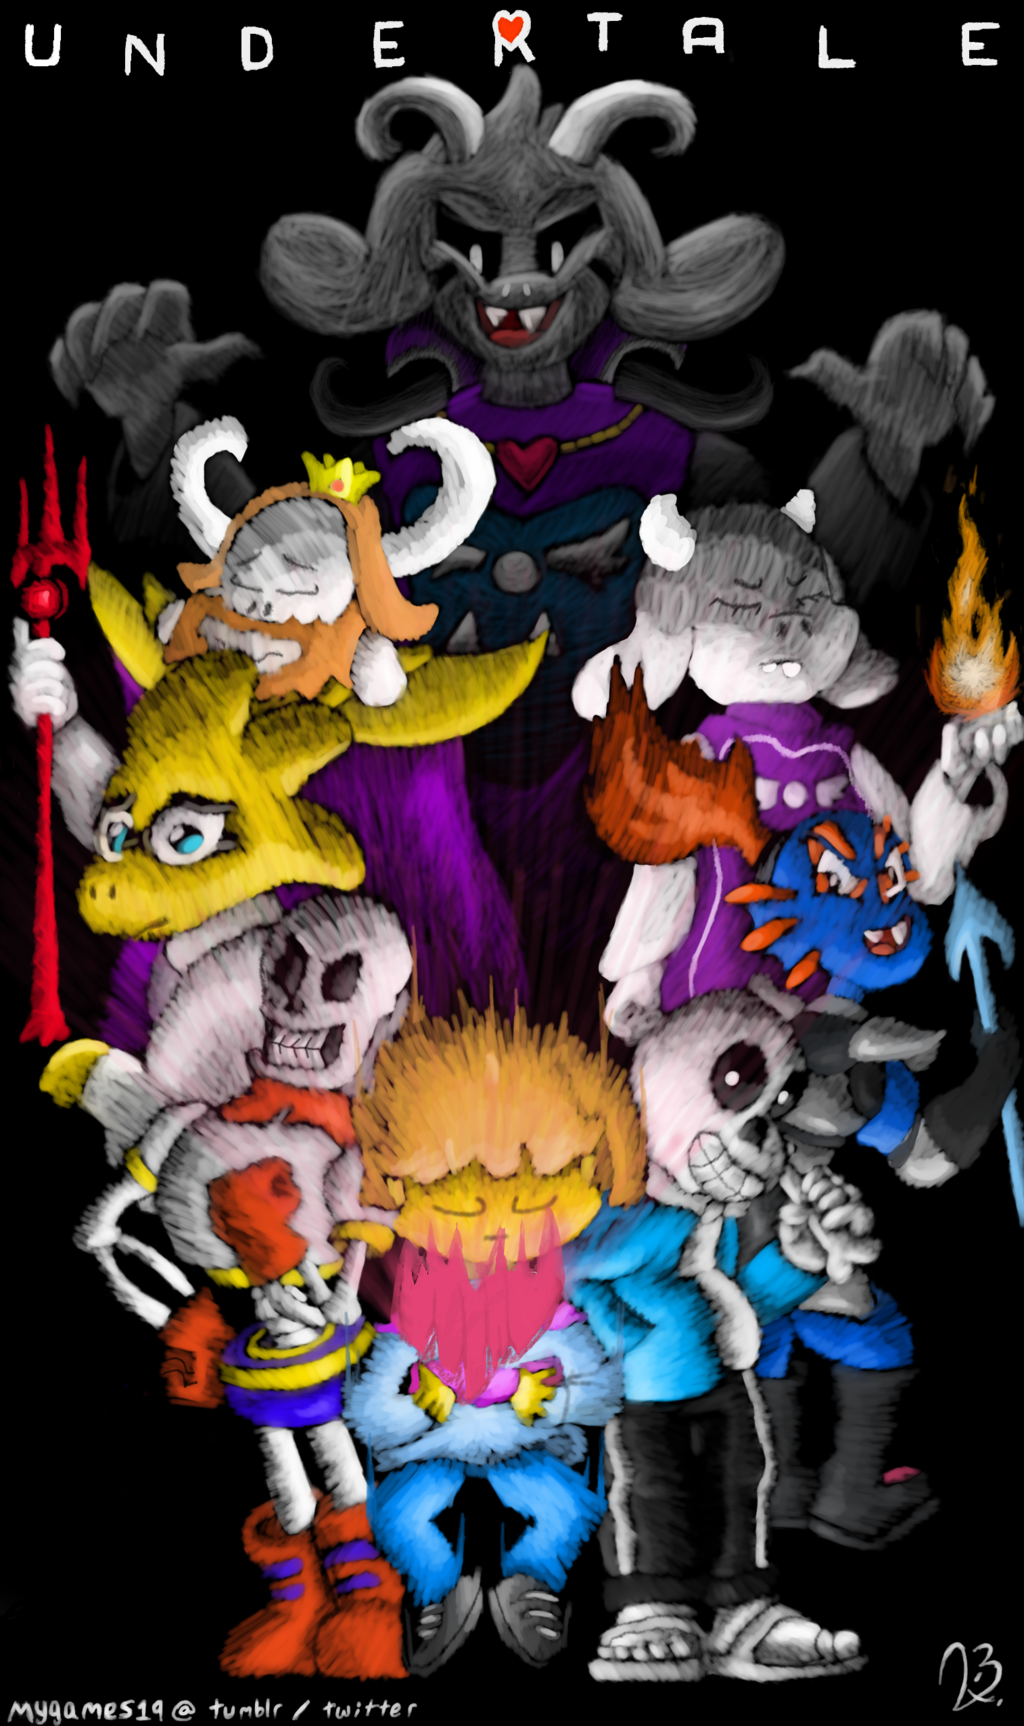 The Nature of the SOUL (Undertale)